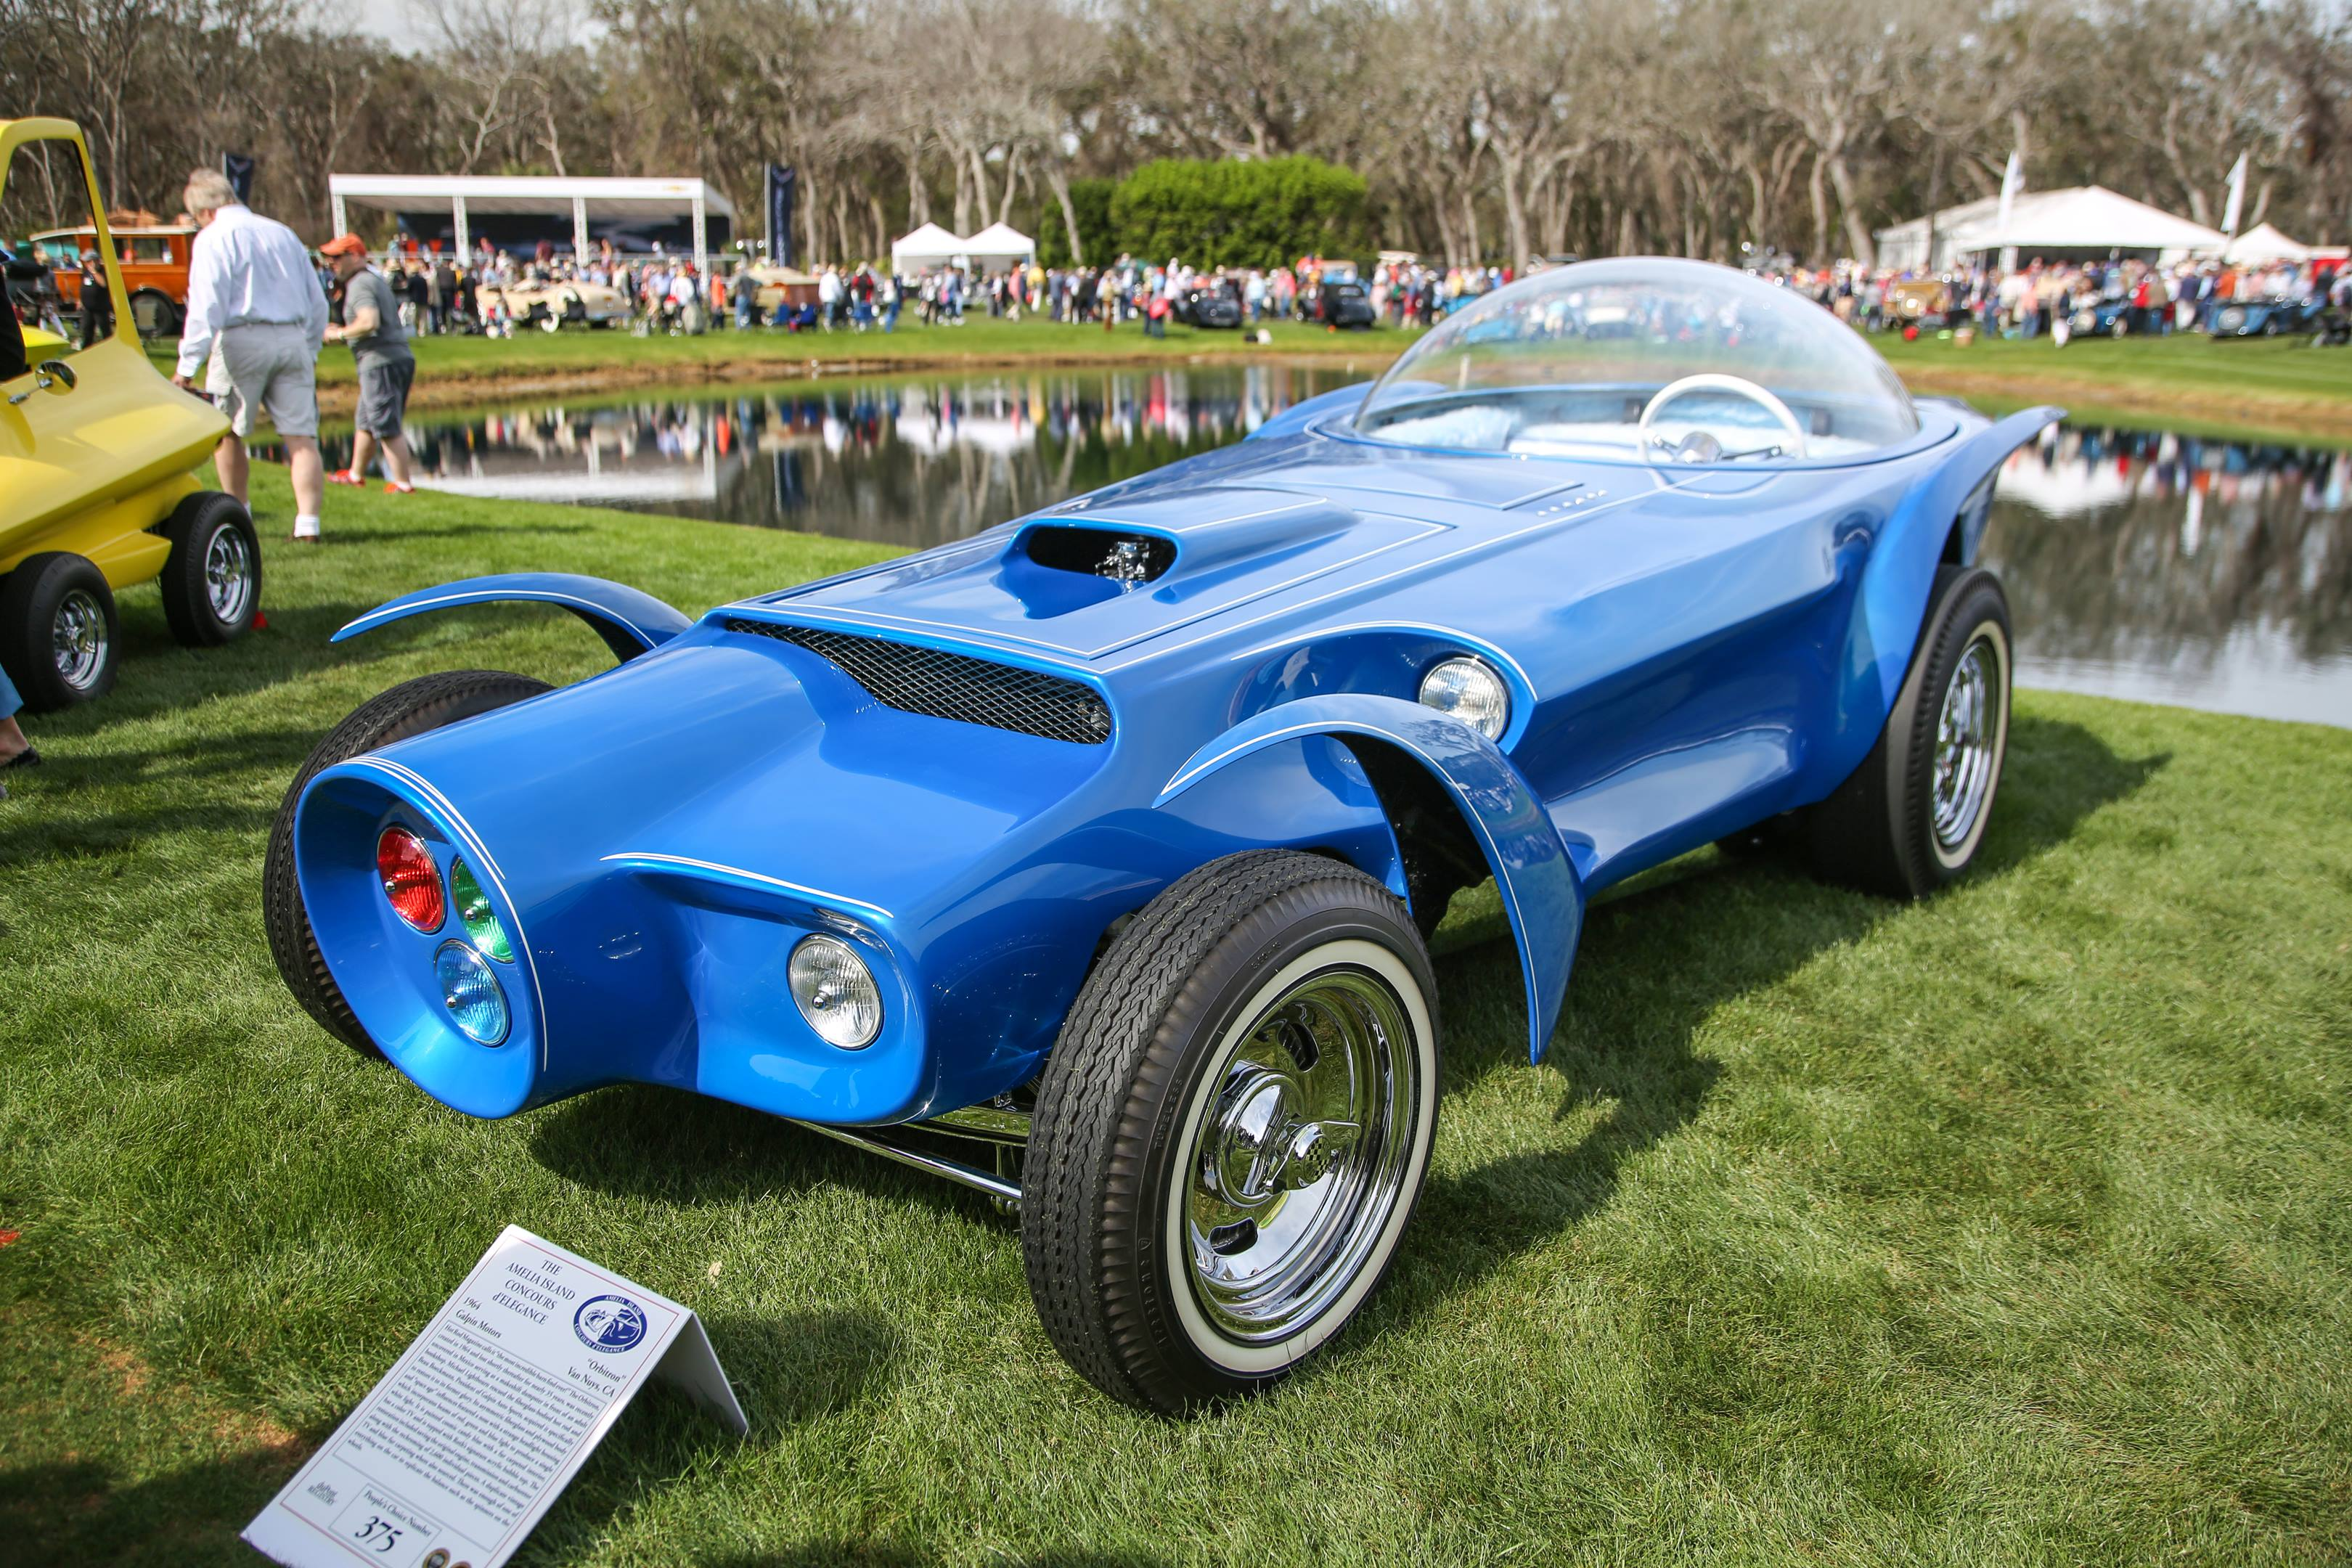 Orbitron was built in 1964 and was missing for years. The slingshot-dragster-inspired body was found in Mexico and was purchased by Beau Boeckmann, President of Galpin Auto Sports, where the car was restored.